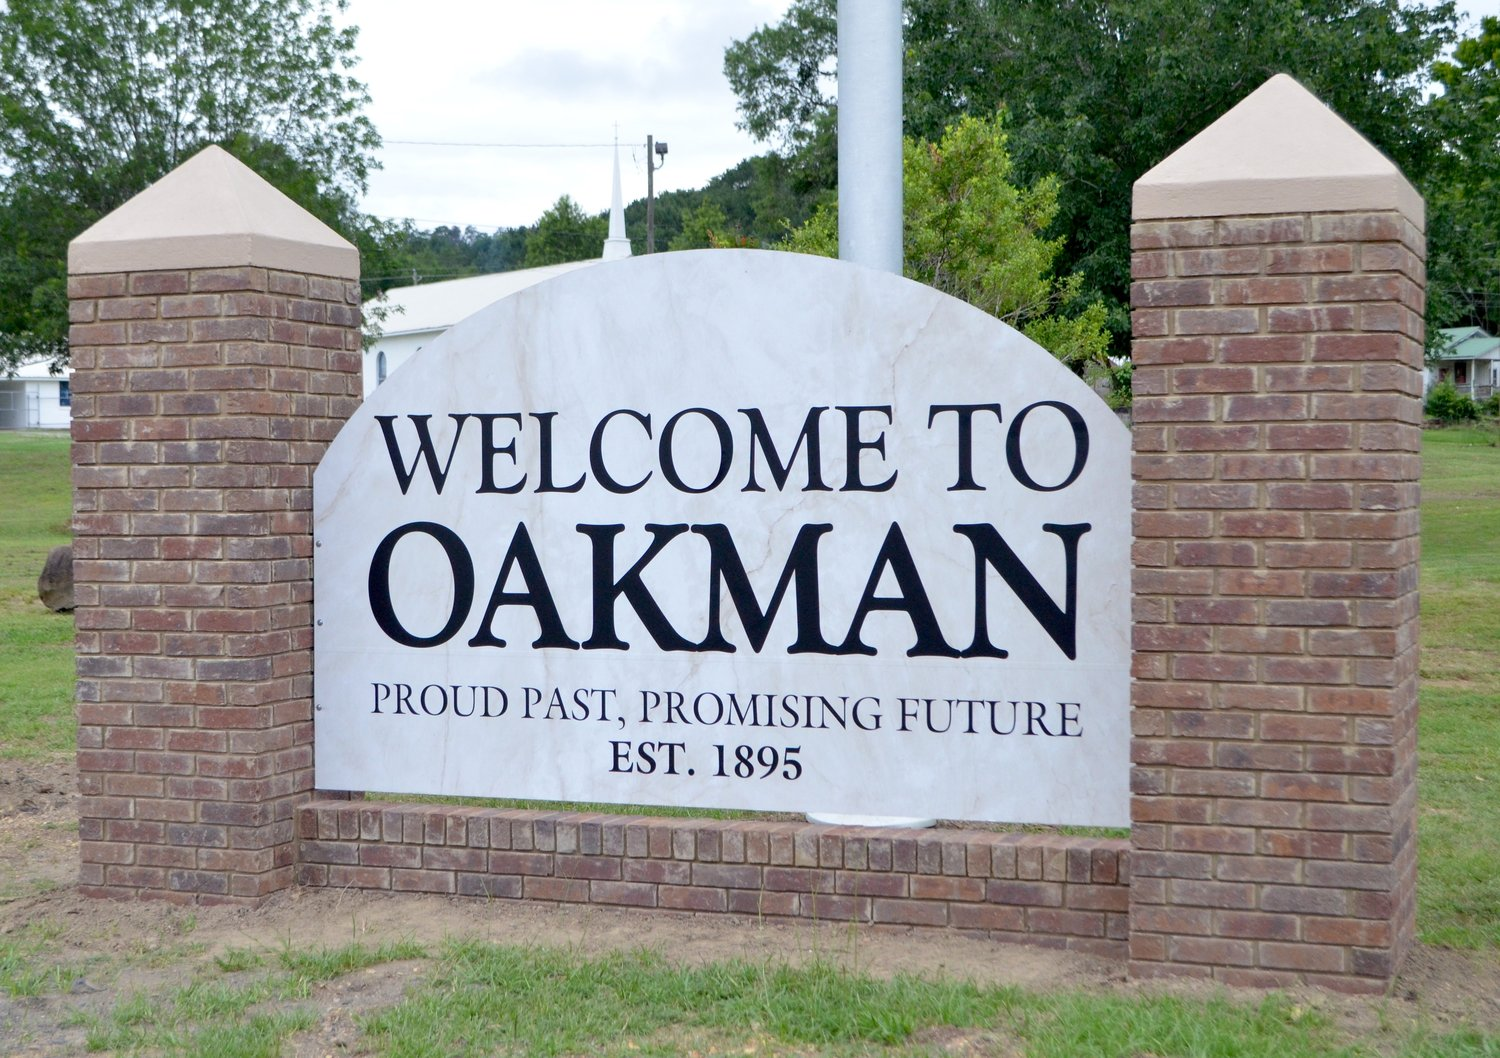 Oakman will be hosting a Halloween event this year that will allow for social distancing.